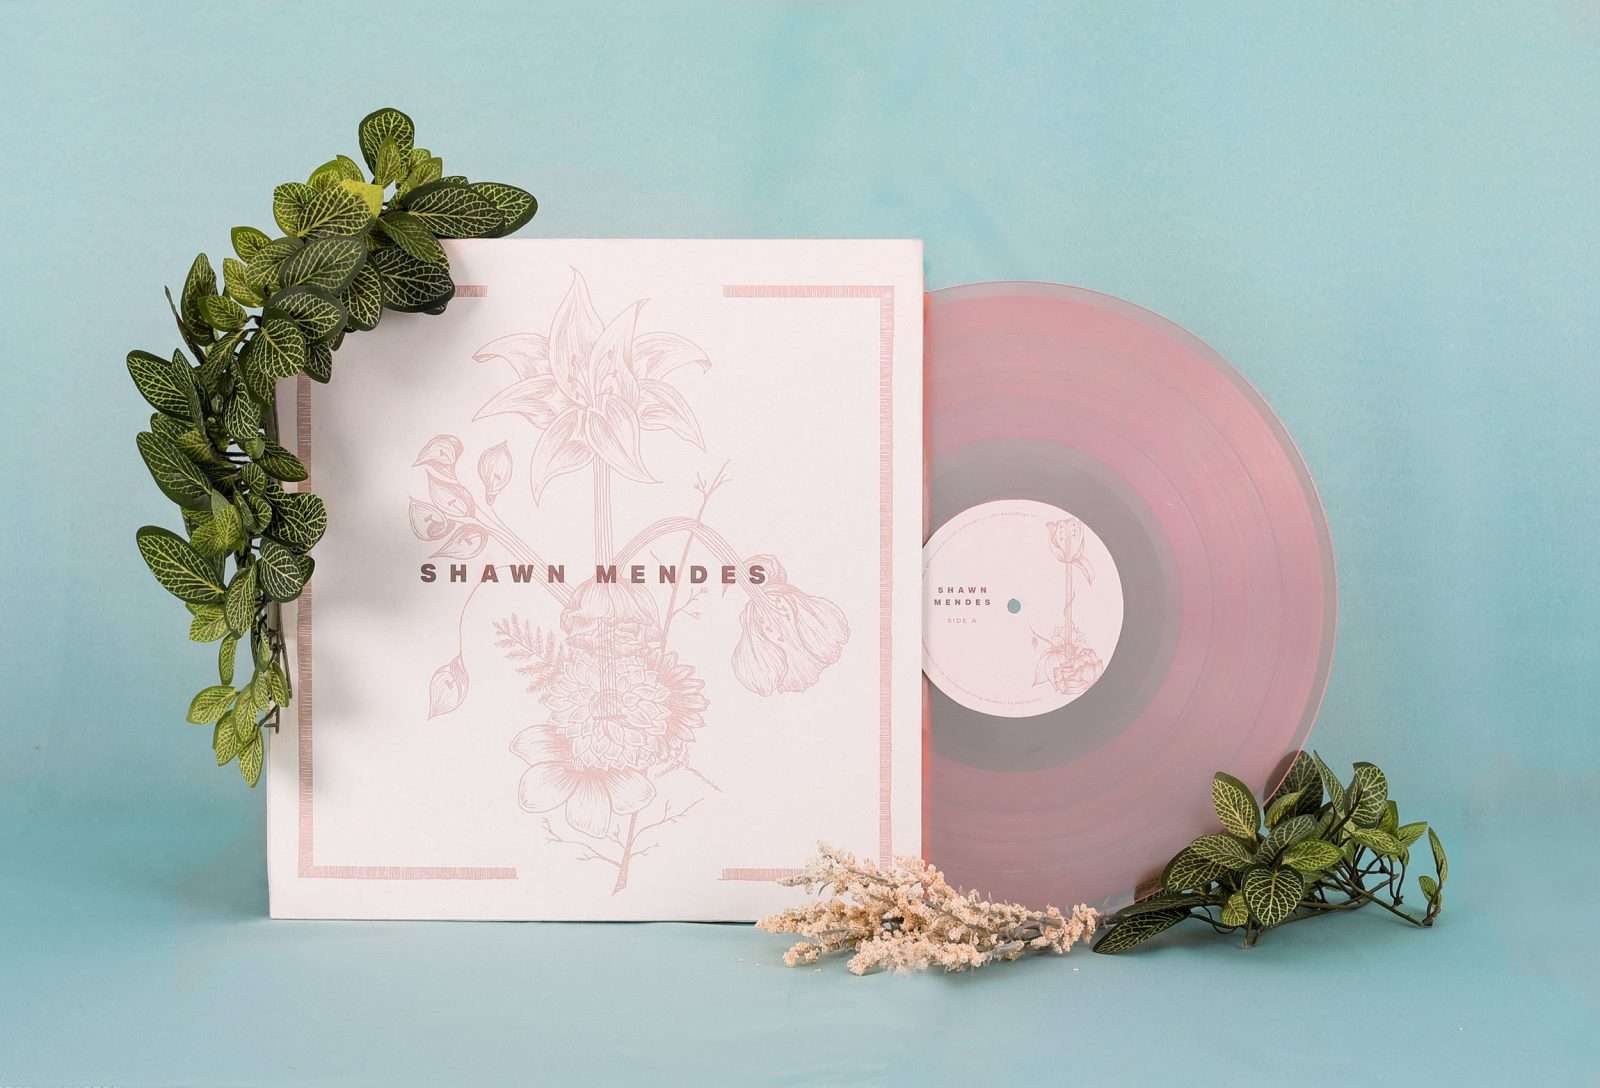 Full Record Packaging Design for Shawn Mendes